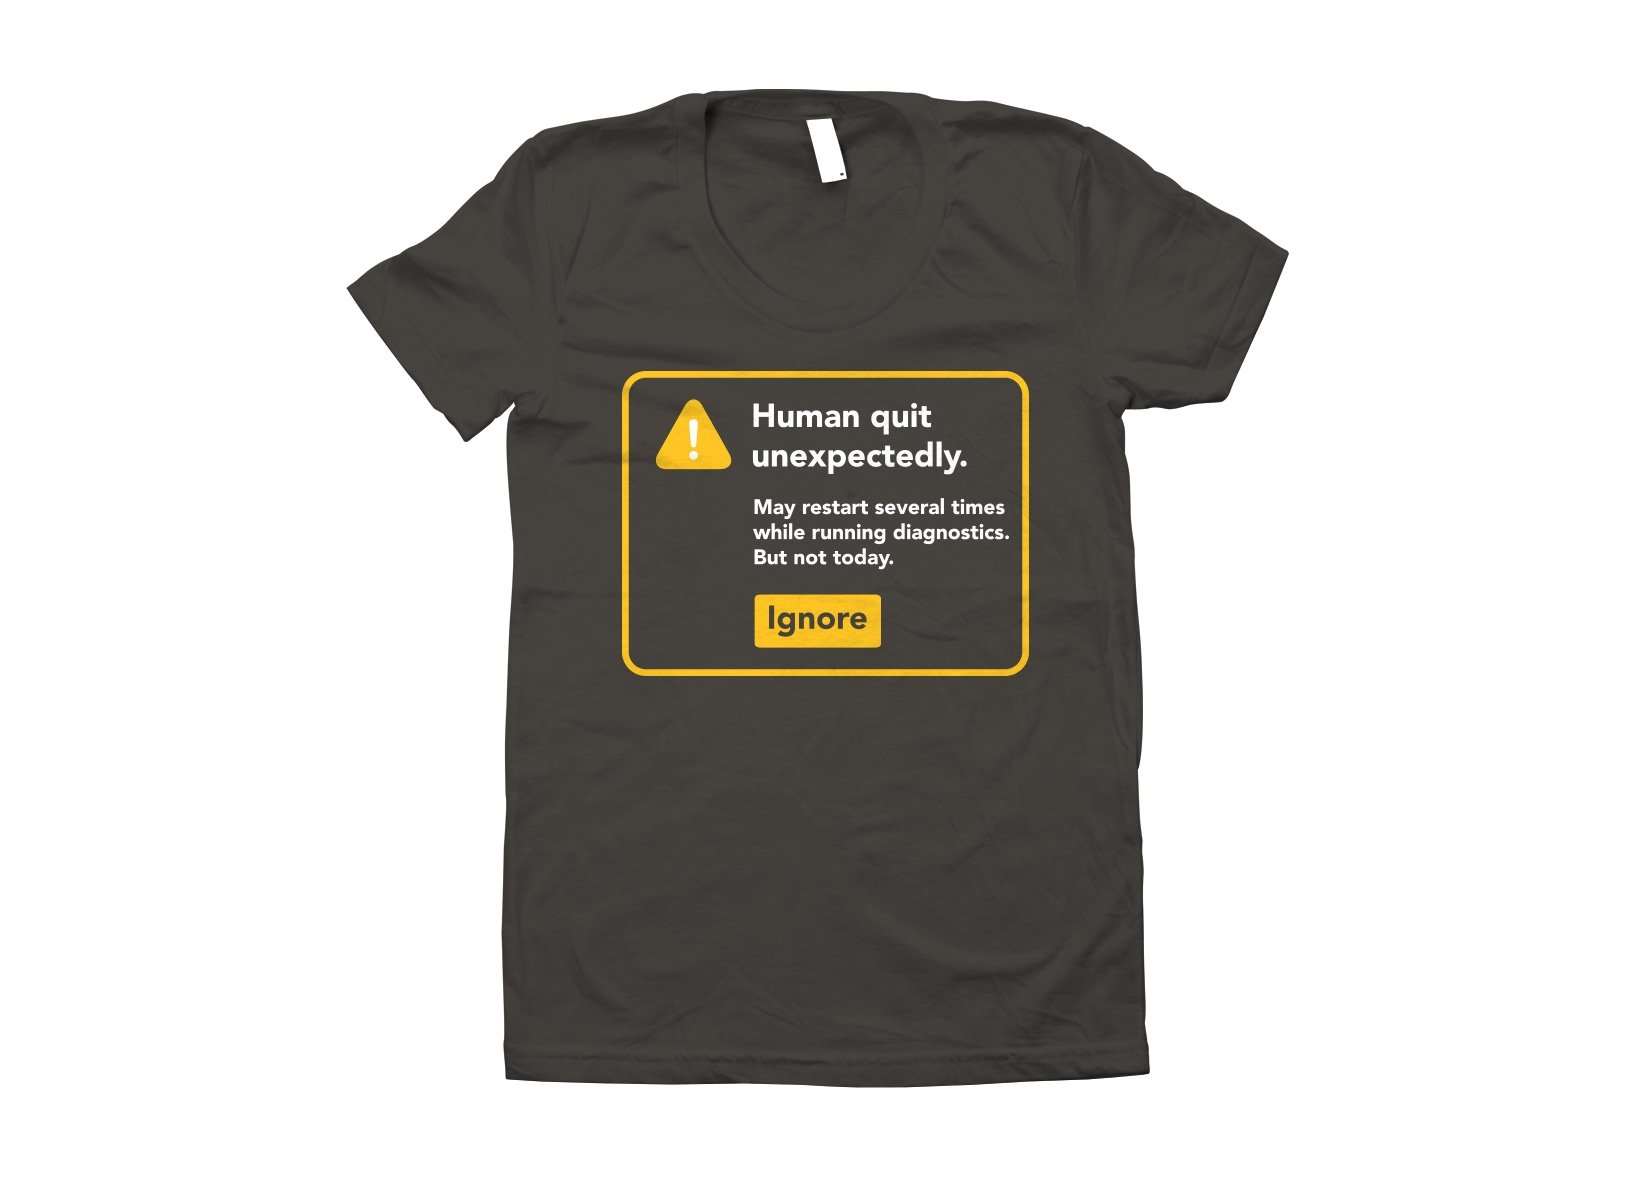 Human Quit Unexpectedly on Juniors T-Shirt